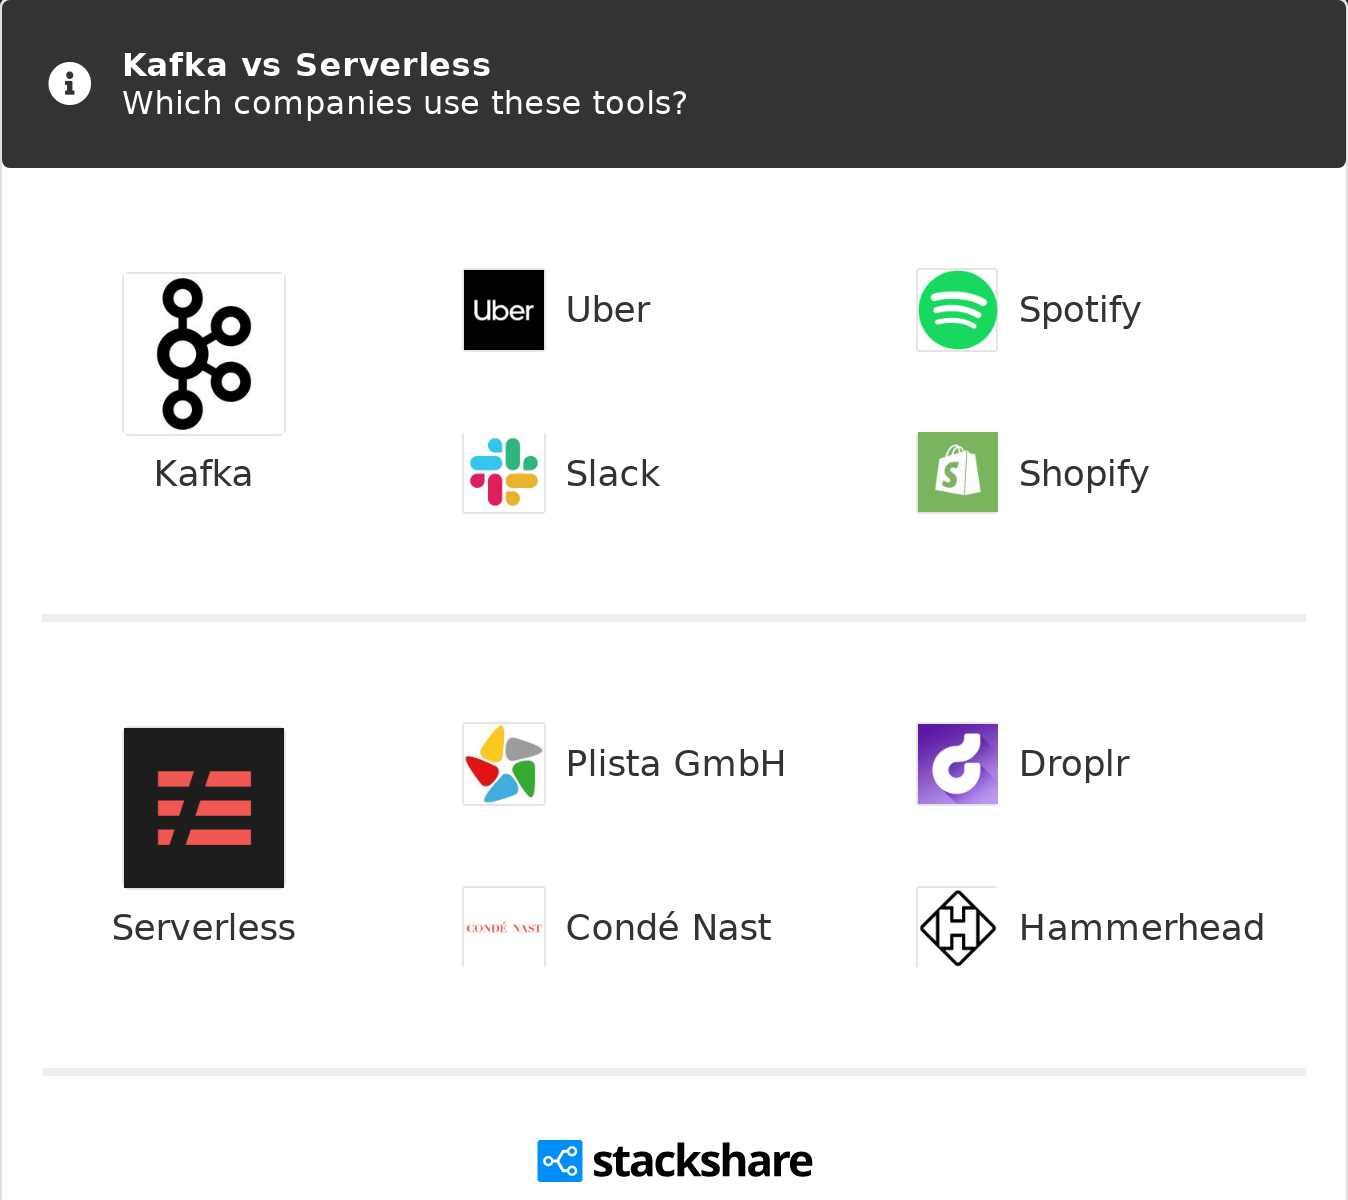 Kafka vs Serverless | What are the differences?